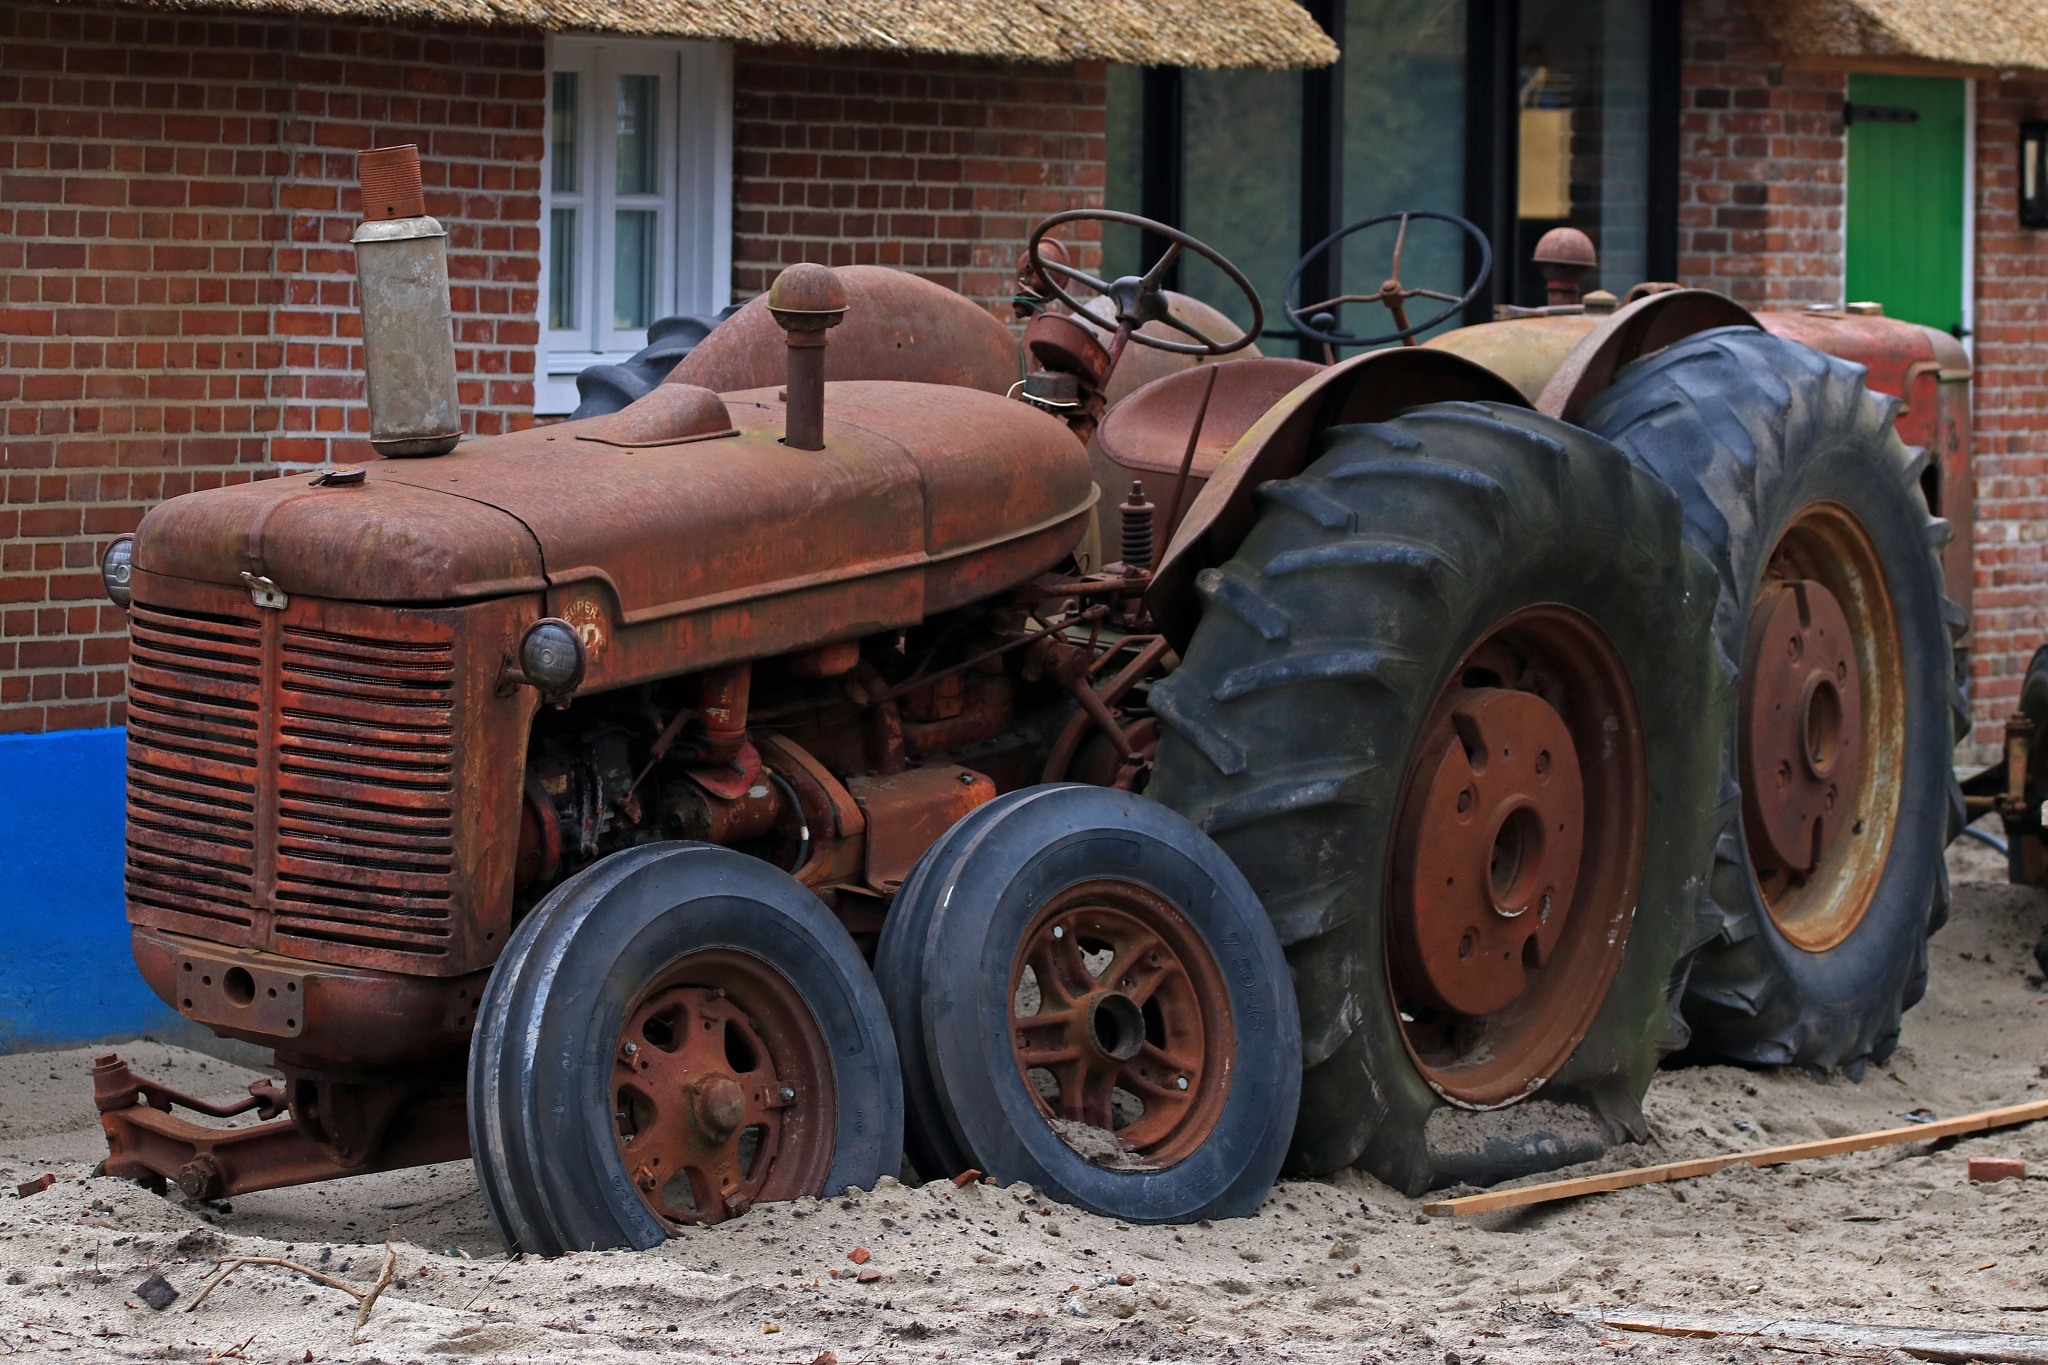 tractor at the end by Jeroen Wouter van der Vlist